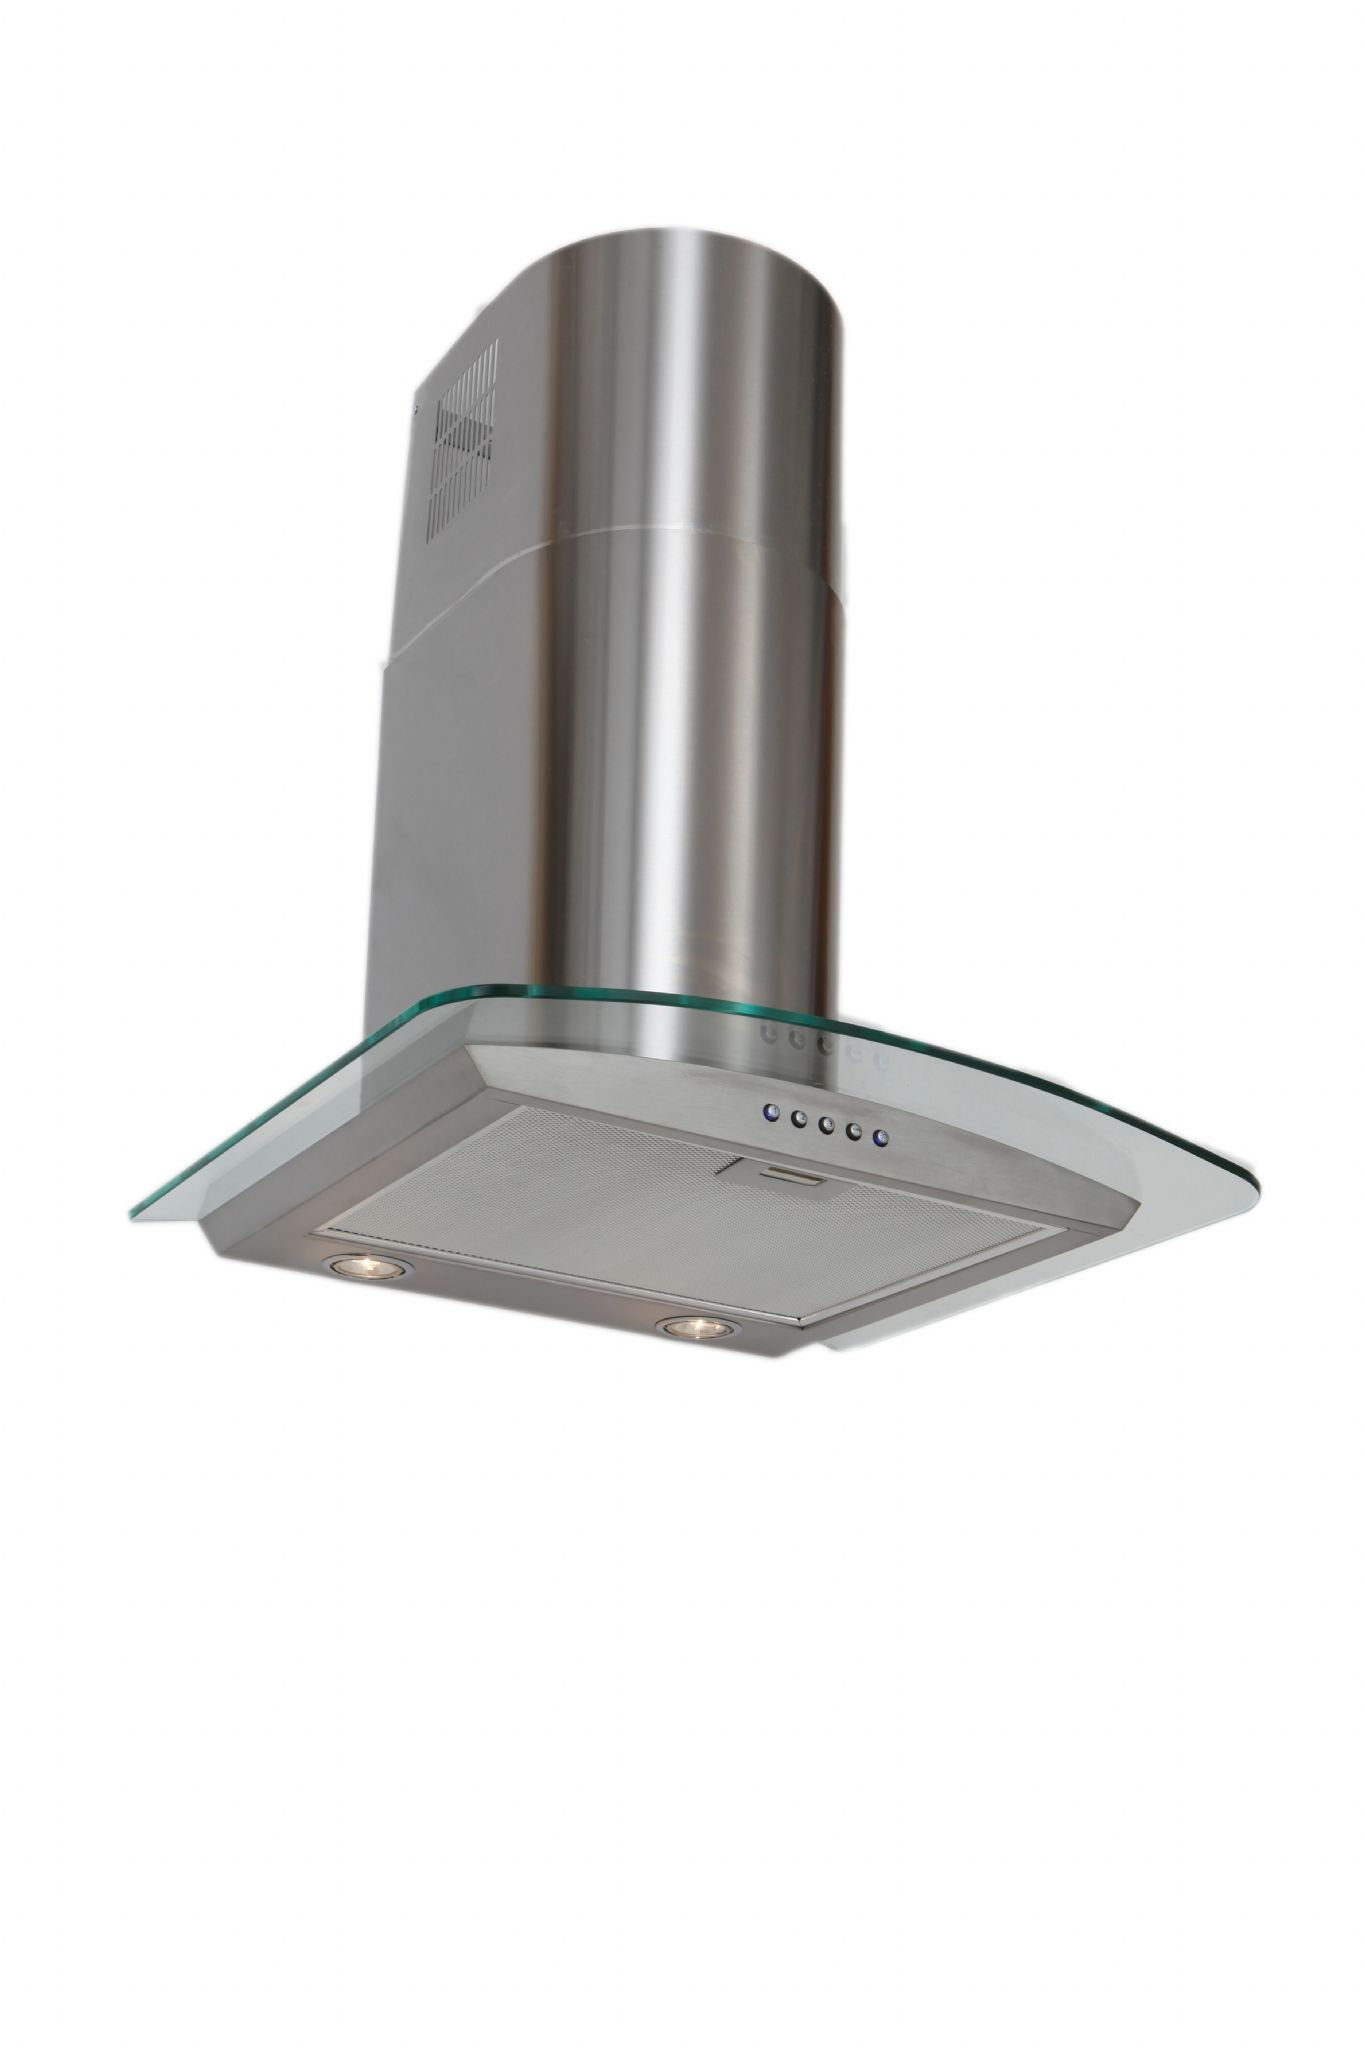 Lux Air La60cvdglss 60cm Chimney Hood Curved Glass And